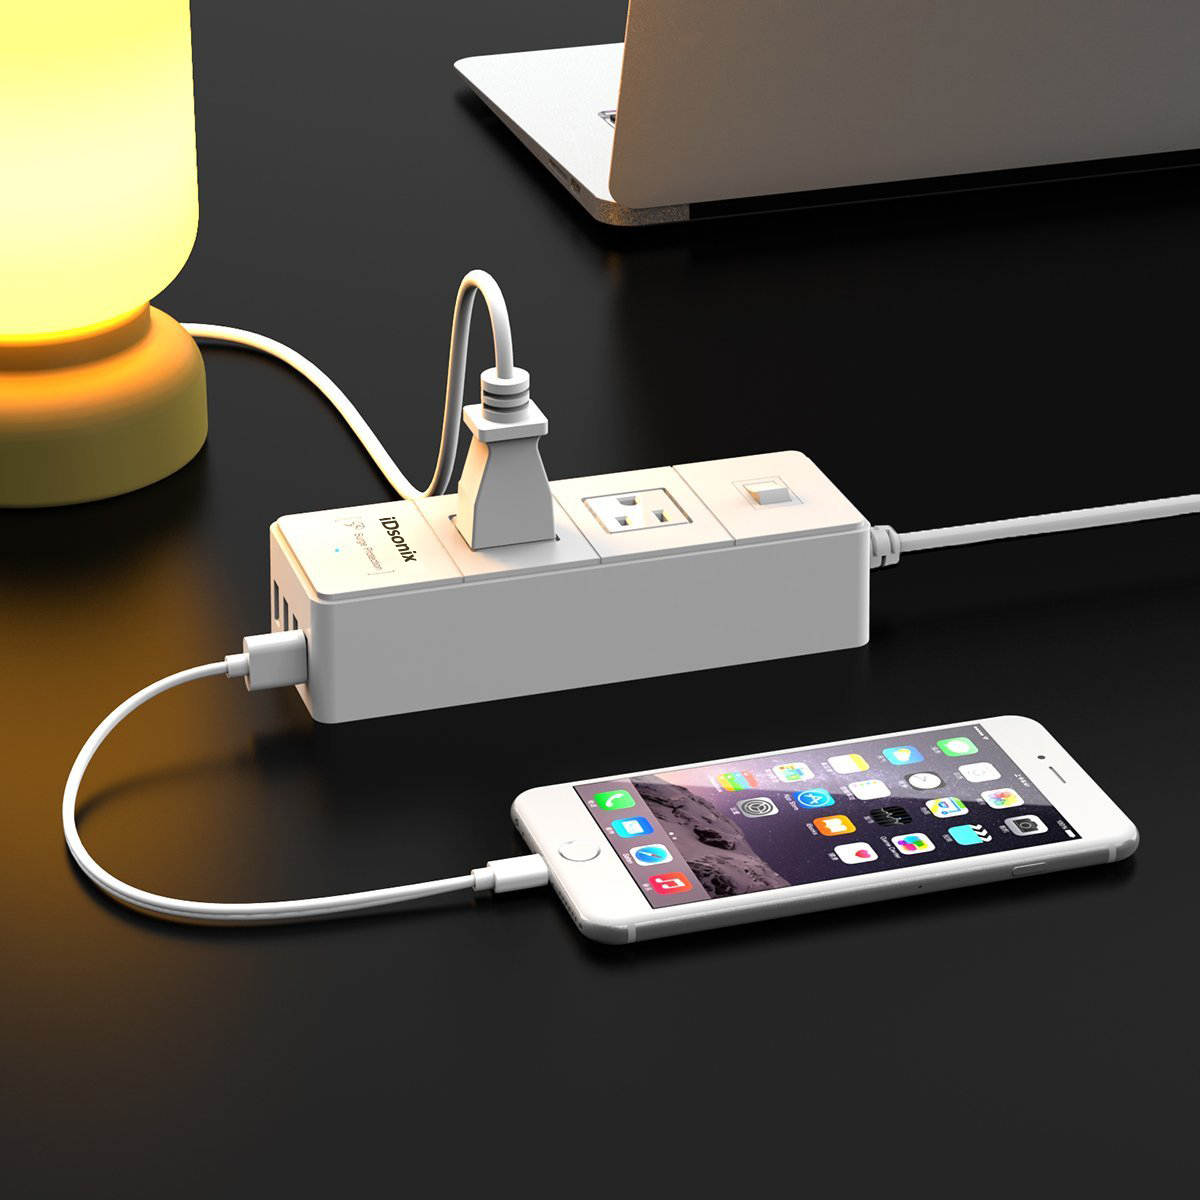 iDsonix® Traveling 1250W 2 Outlet Surge Protector Power Strip with 20W 4 Ports USB Charger for iPhone 7/7 plus, iPad Air 2/Mini 4, Samsung Galaxy S6/S6 Edge/Note 5, HTC, Nexus and More